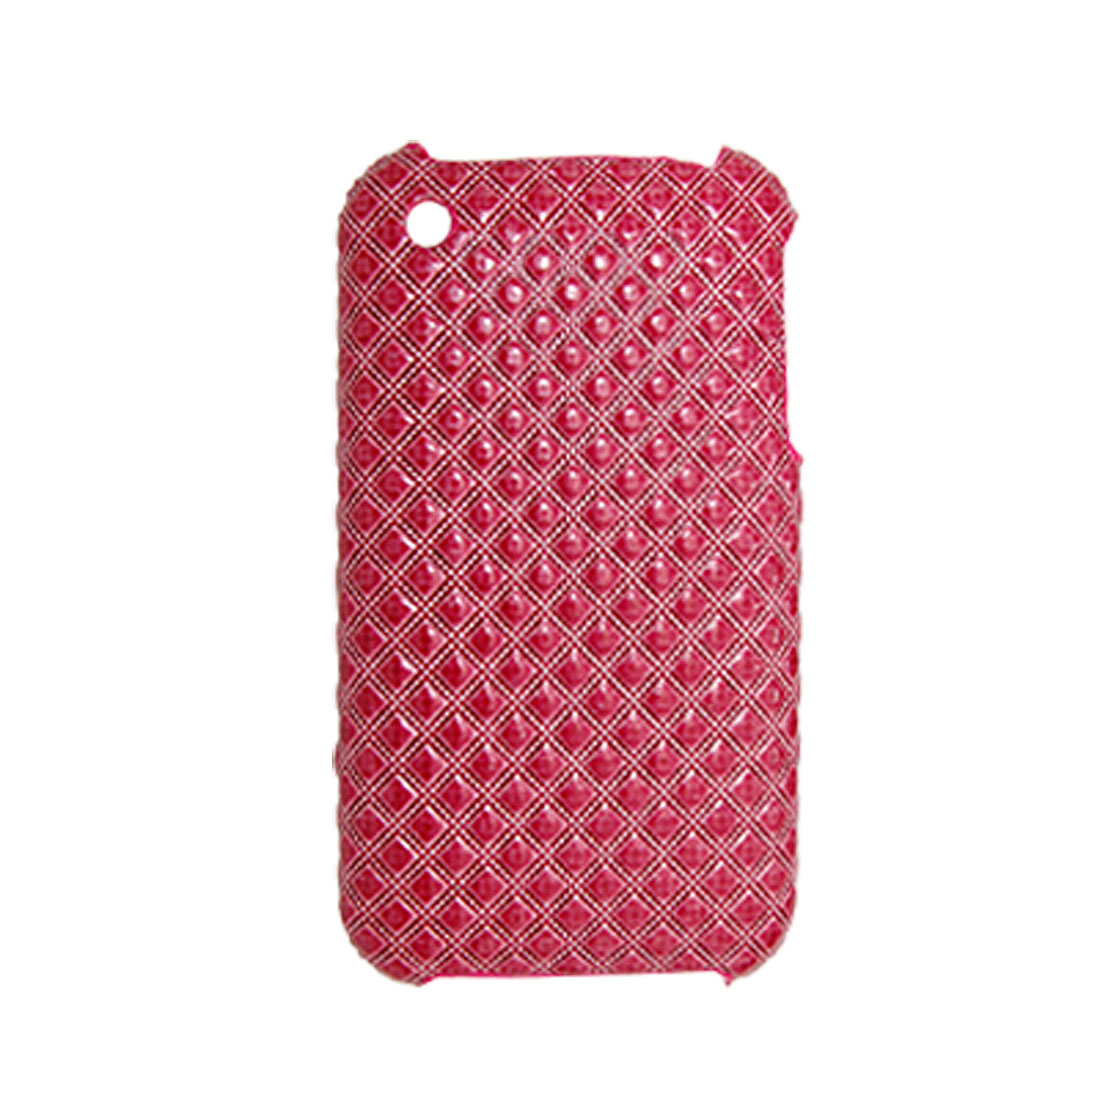 Checked Faux Leather Coated Plastic Case Red for Apple iPhone 3G